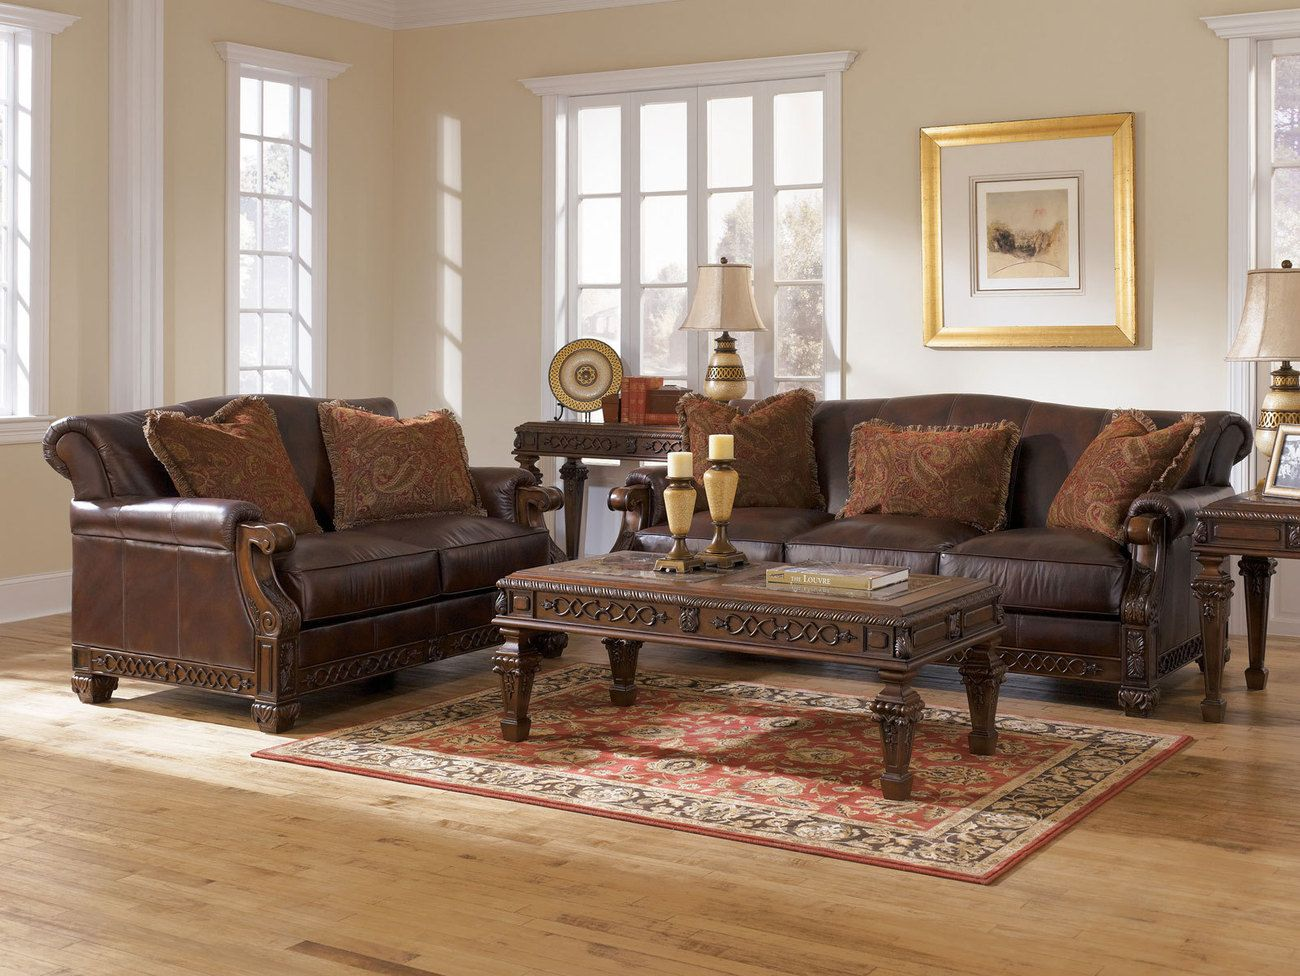 Charming Room Decor · OPULENCE TRADITIONAL WOOD TRIM BROWN GENUINE LEATHER SOFA  COUCH SET LIVING ROOM Design Inspirations